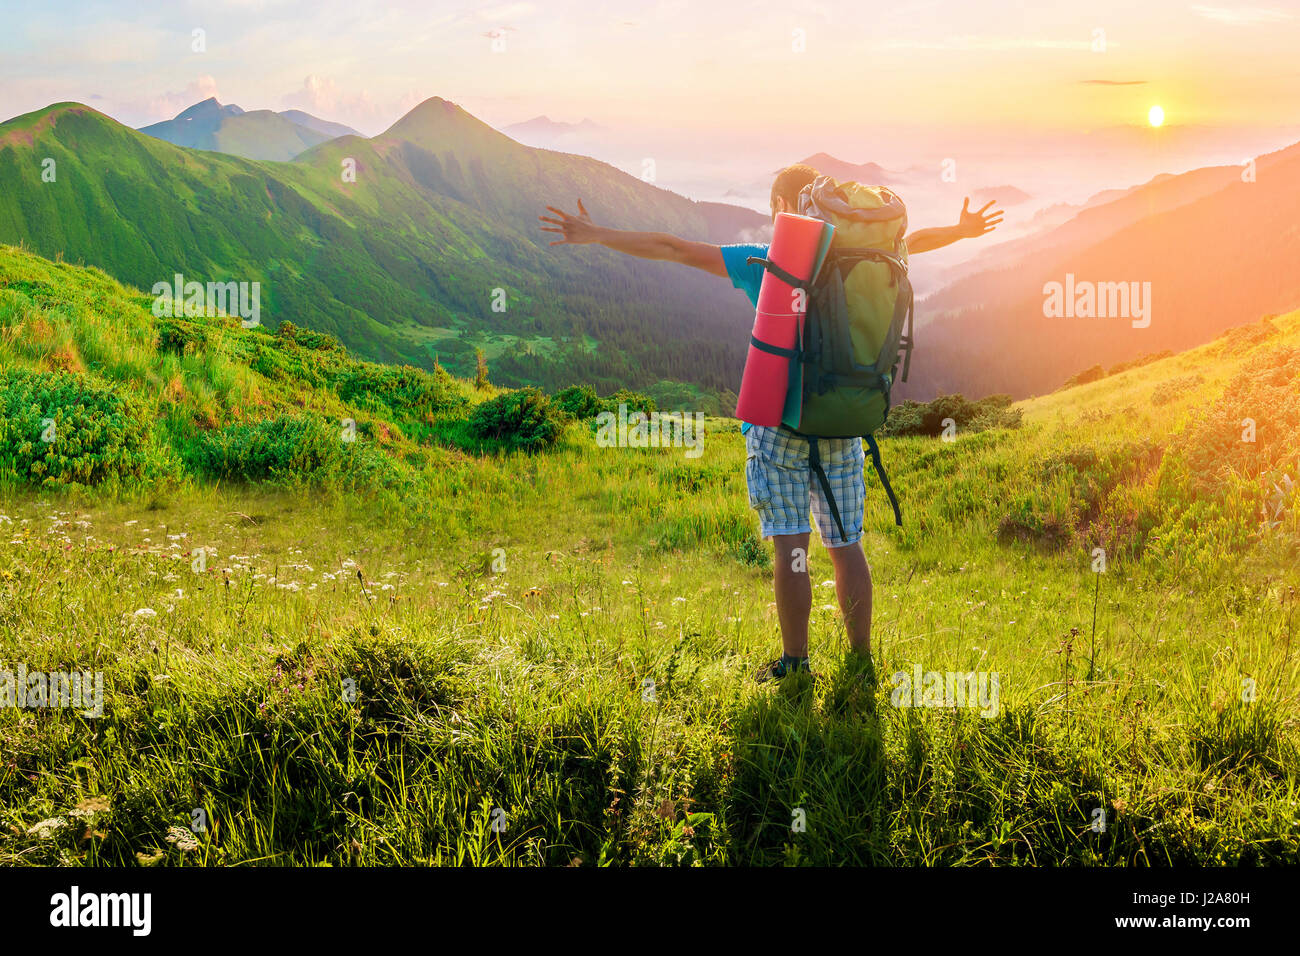 Hiker with a backpack standing in mountains. Amazing nature landscape. Soft light effect Stock Photo